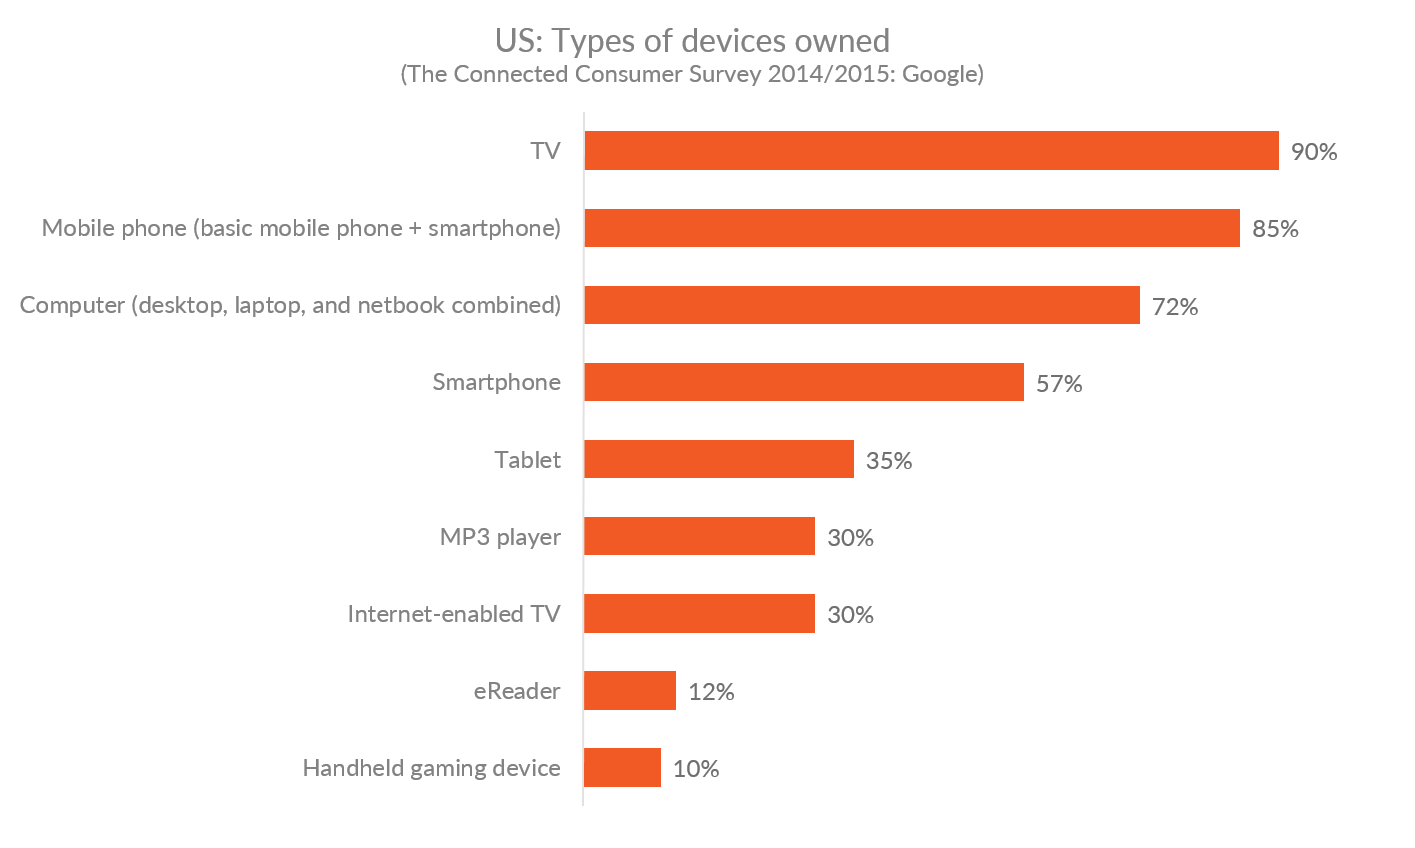 Graph showing the percentage of Americans who own different kinds of devices